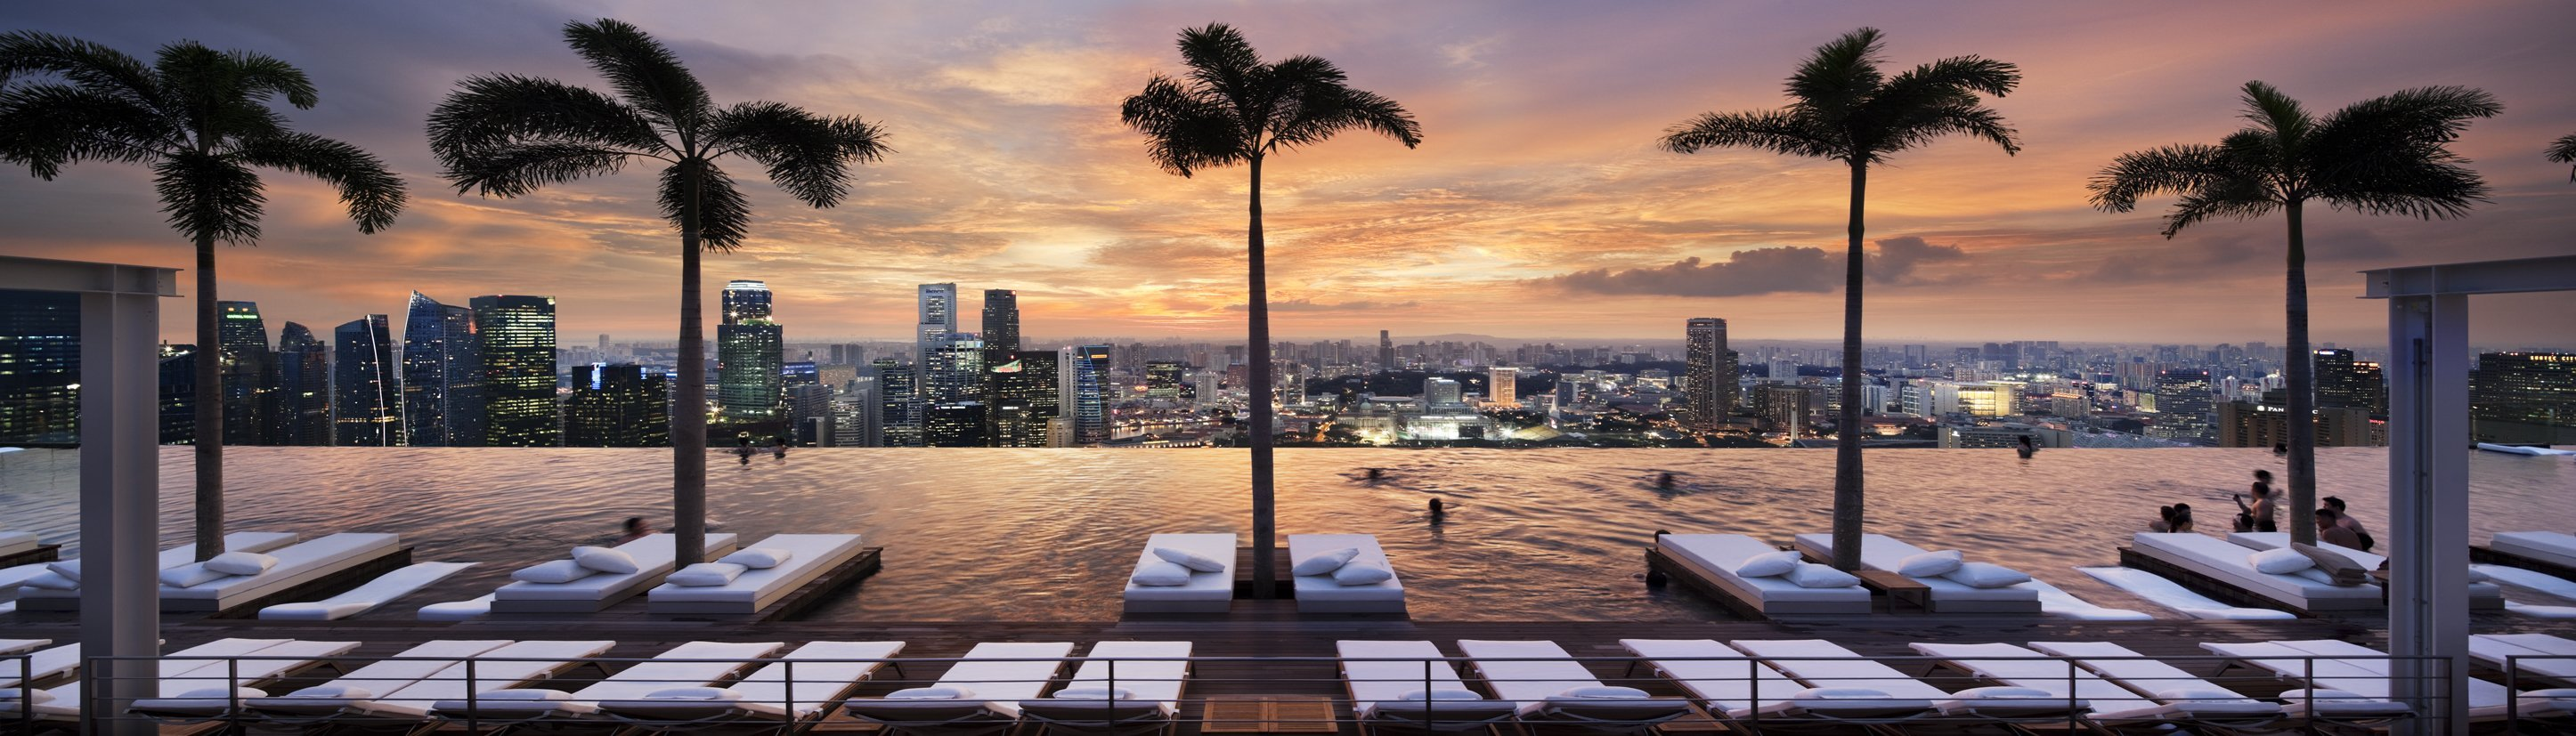 At the Marina Bay Sands, swimmers can hug the edge of the hotel's impressive 57th-floor infinity pool.